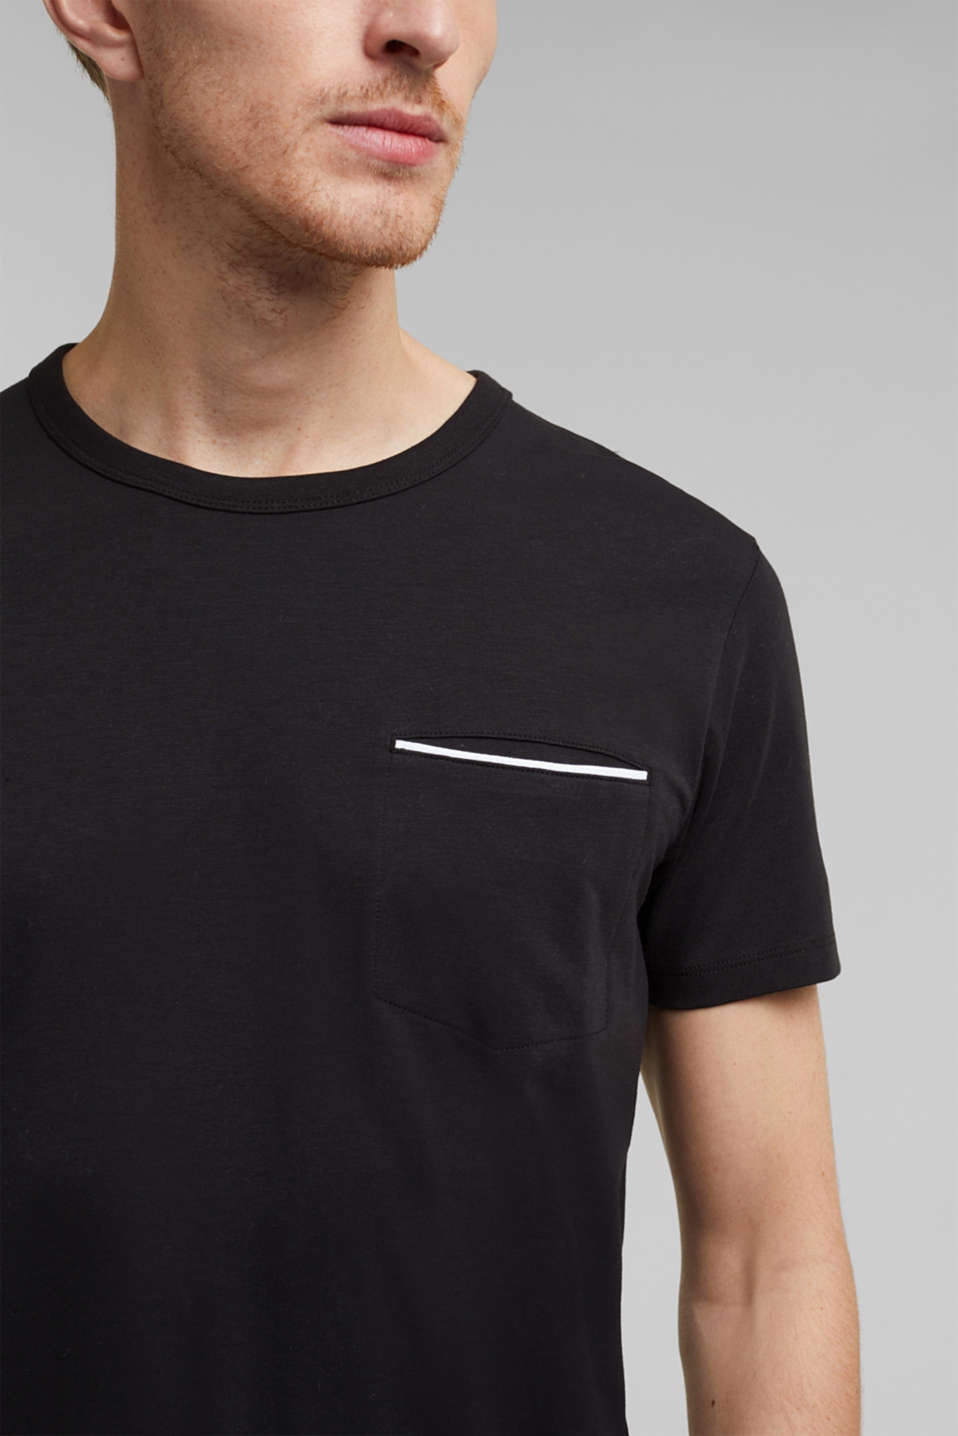 Jersey T-shirt with a pocket and COOLMAX®, BLACK, detail image number 1